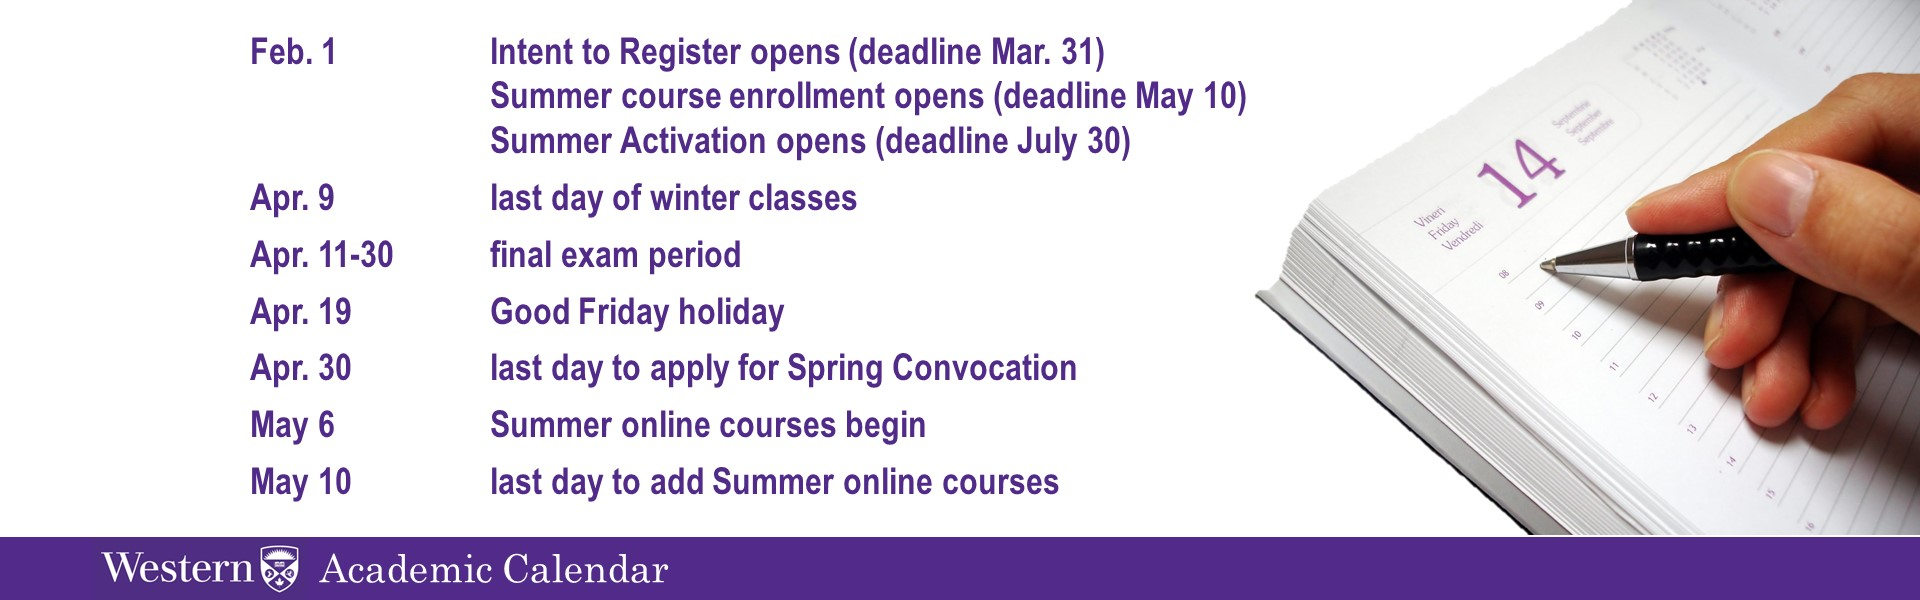 Westernu sessional dates